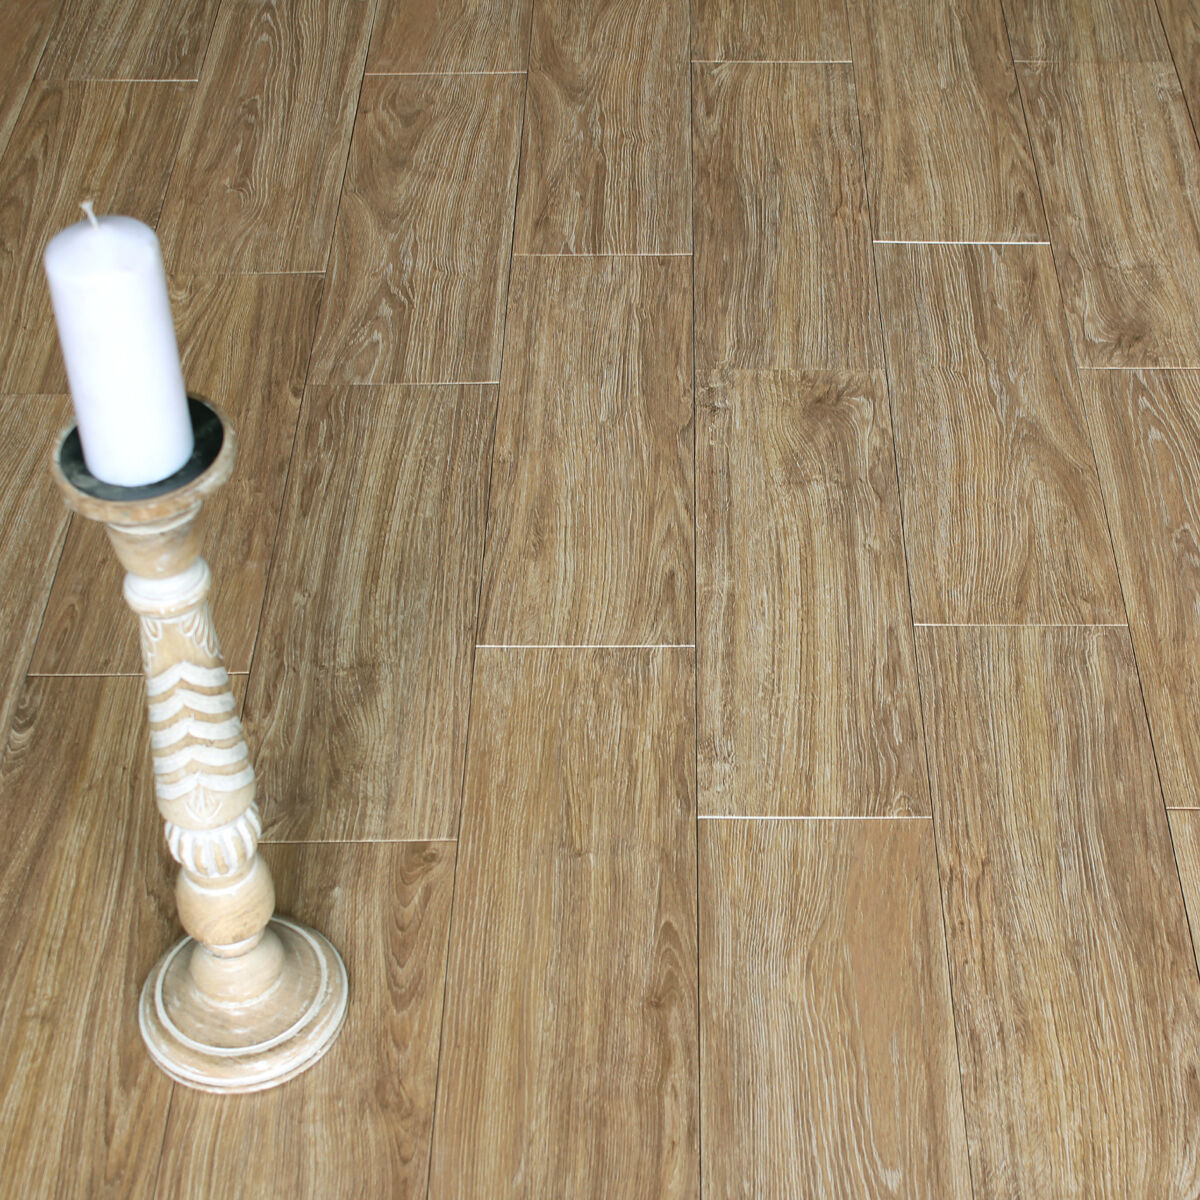 57x19cm Vera Beige Wood Effect Ceramic Floor Tiles 1 Sqm 9 23